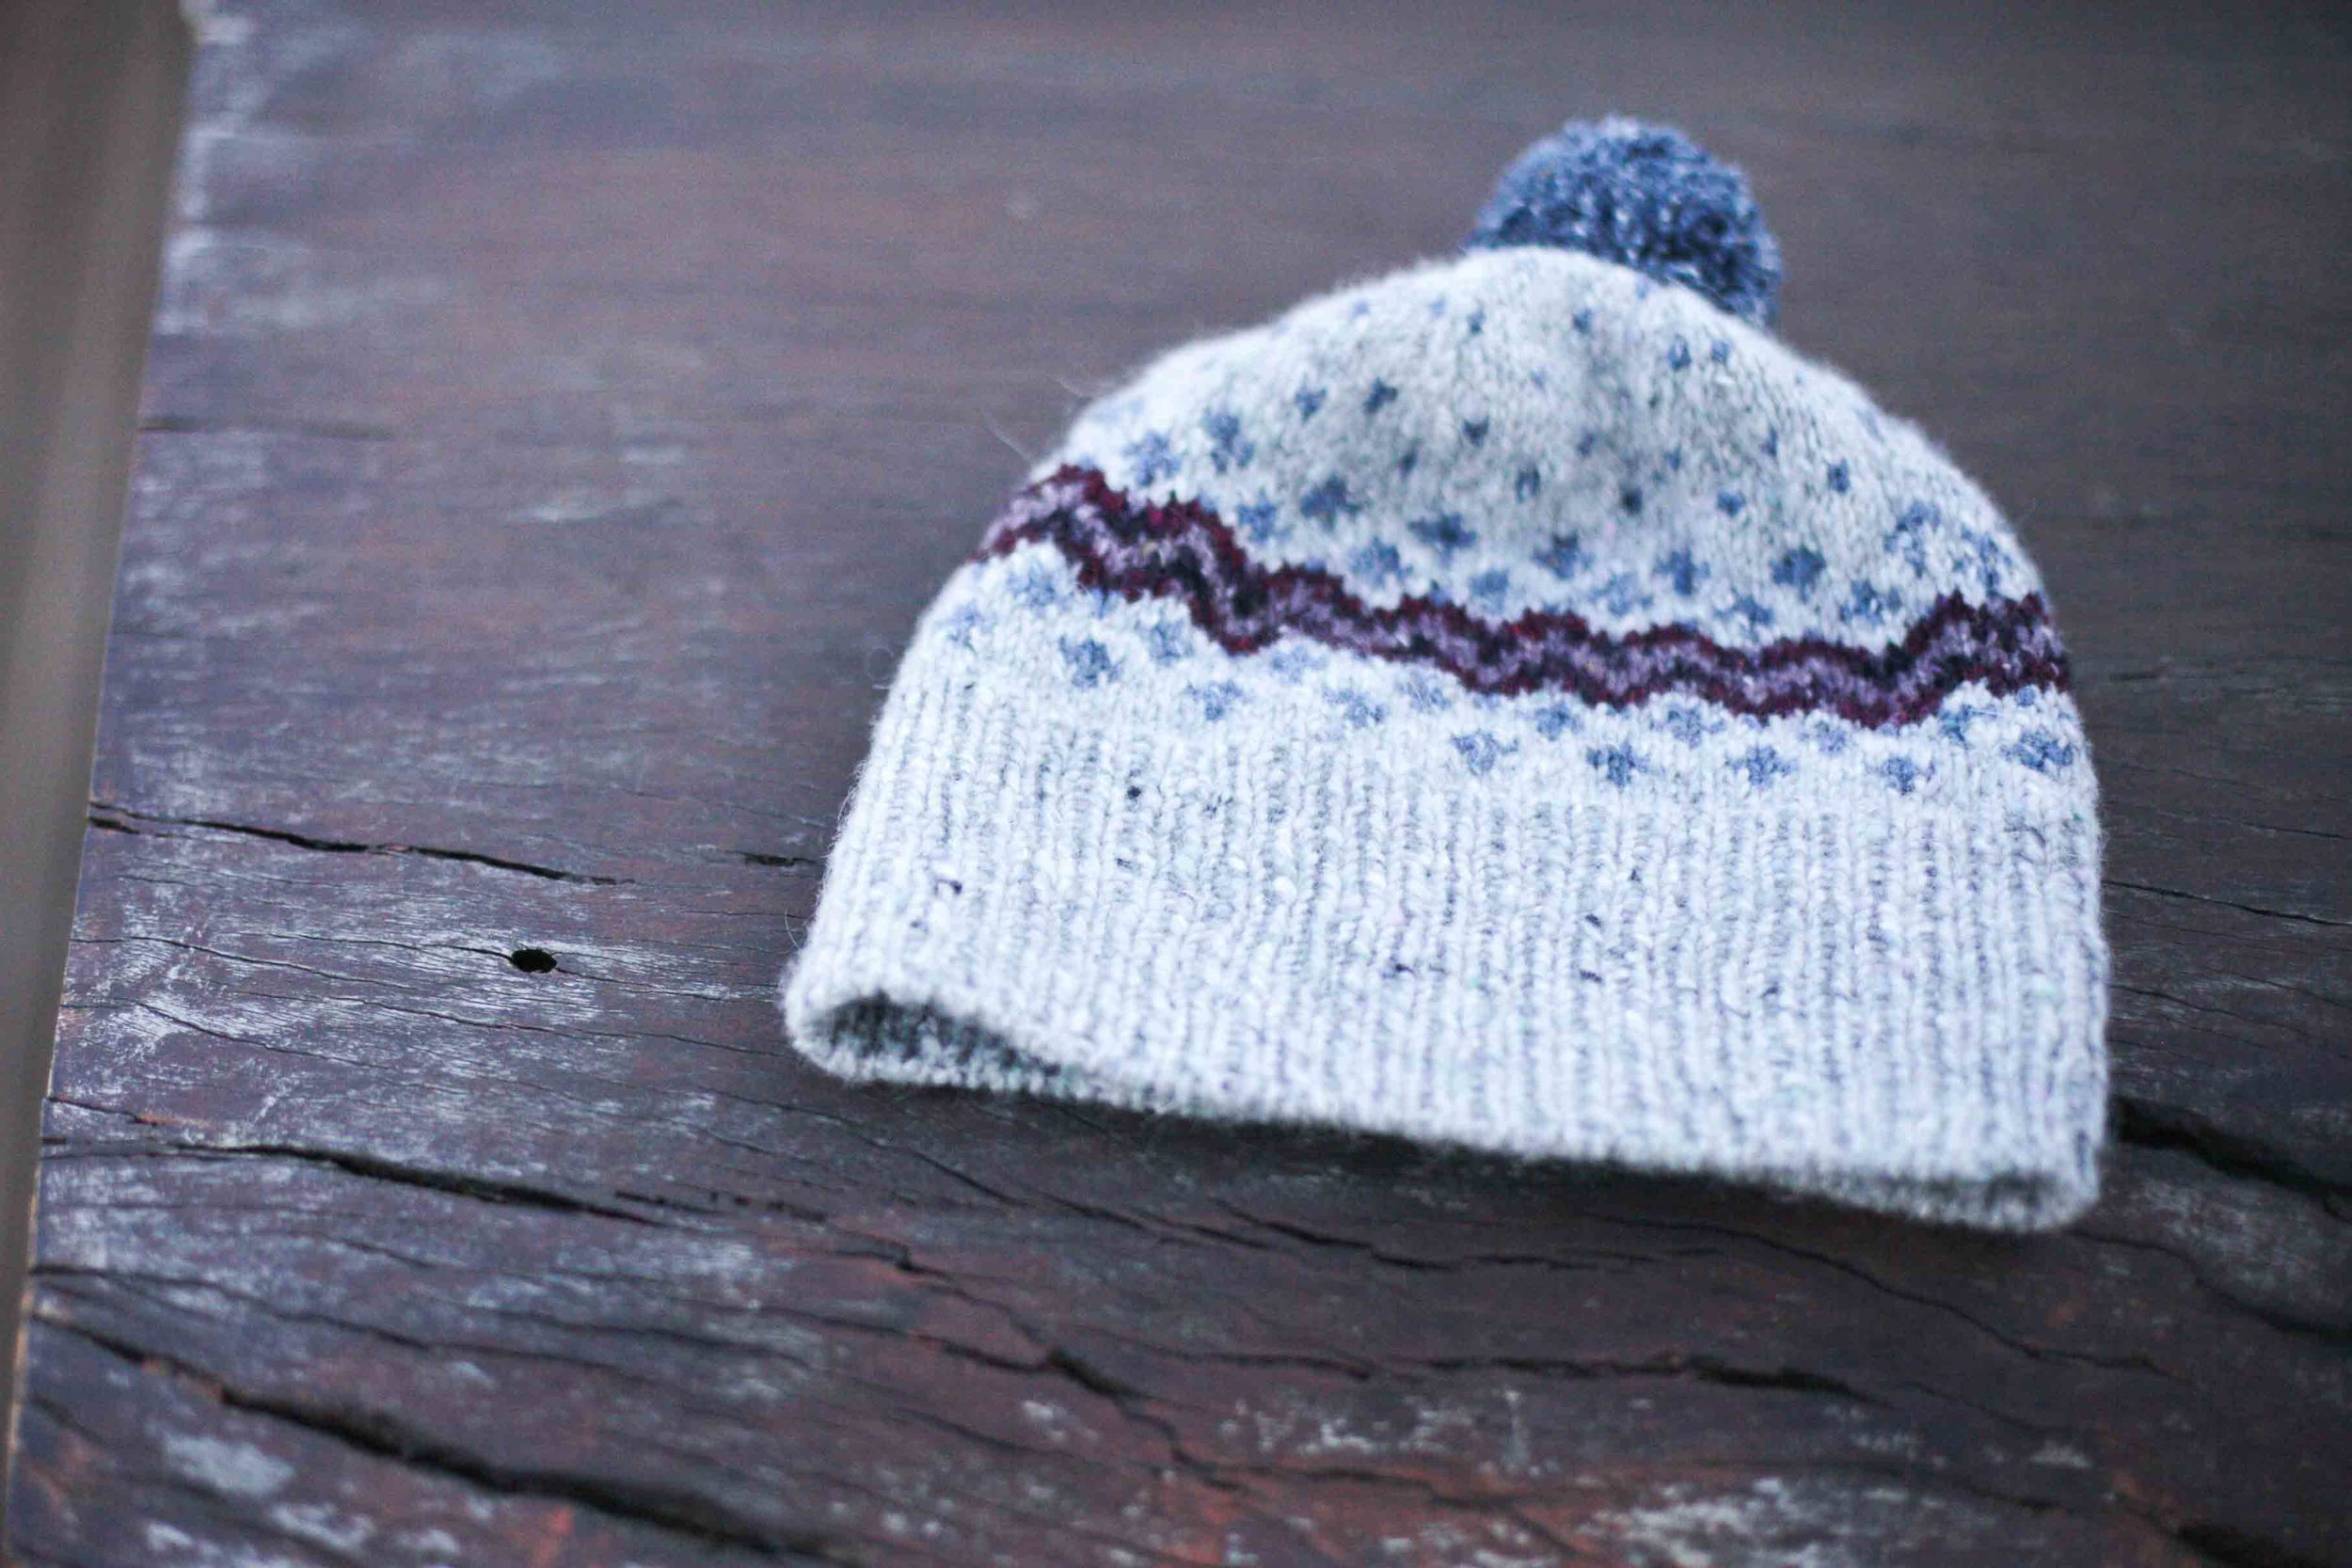 Sample hat from Jule's colour work class.